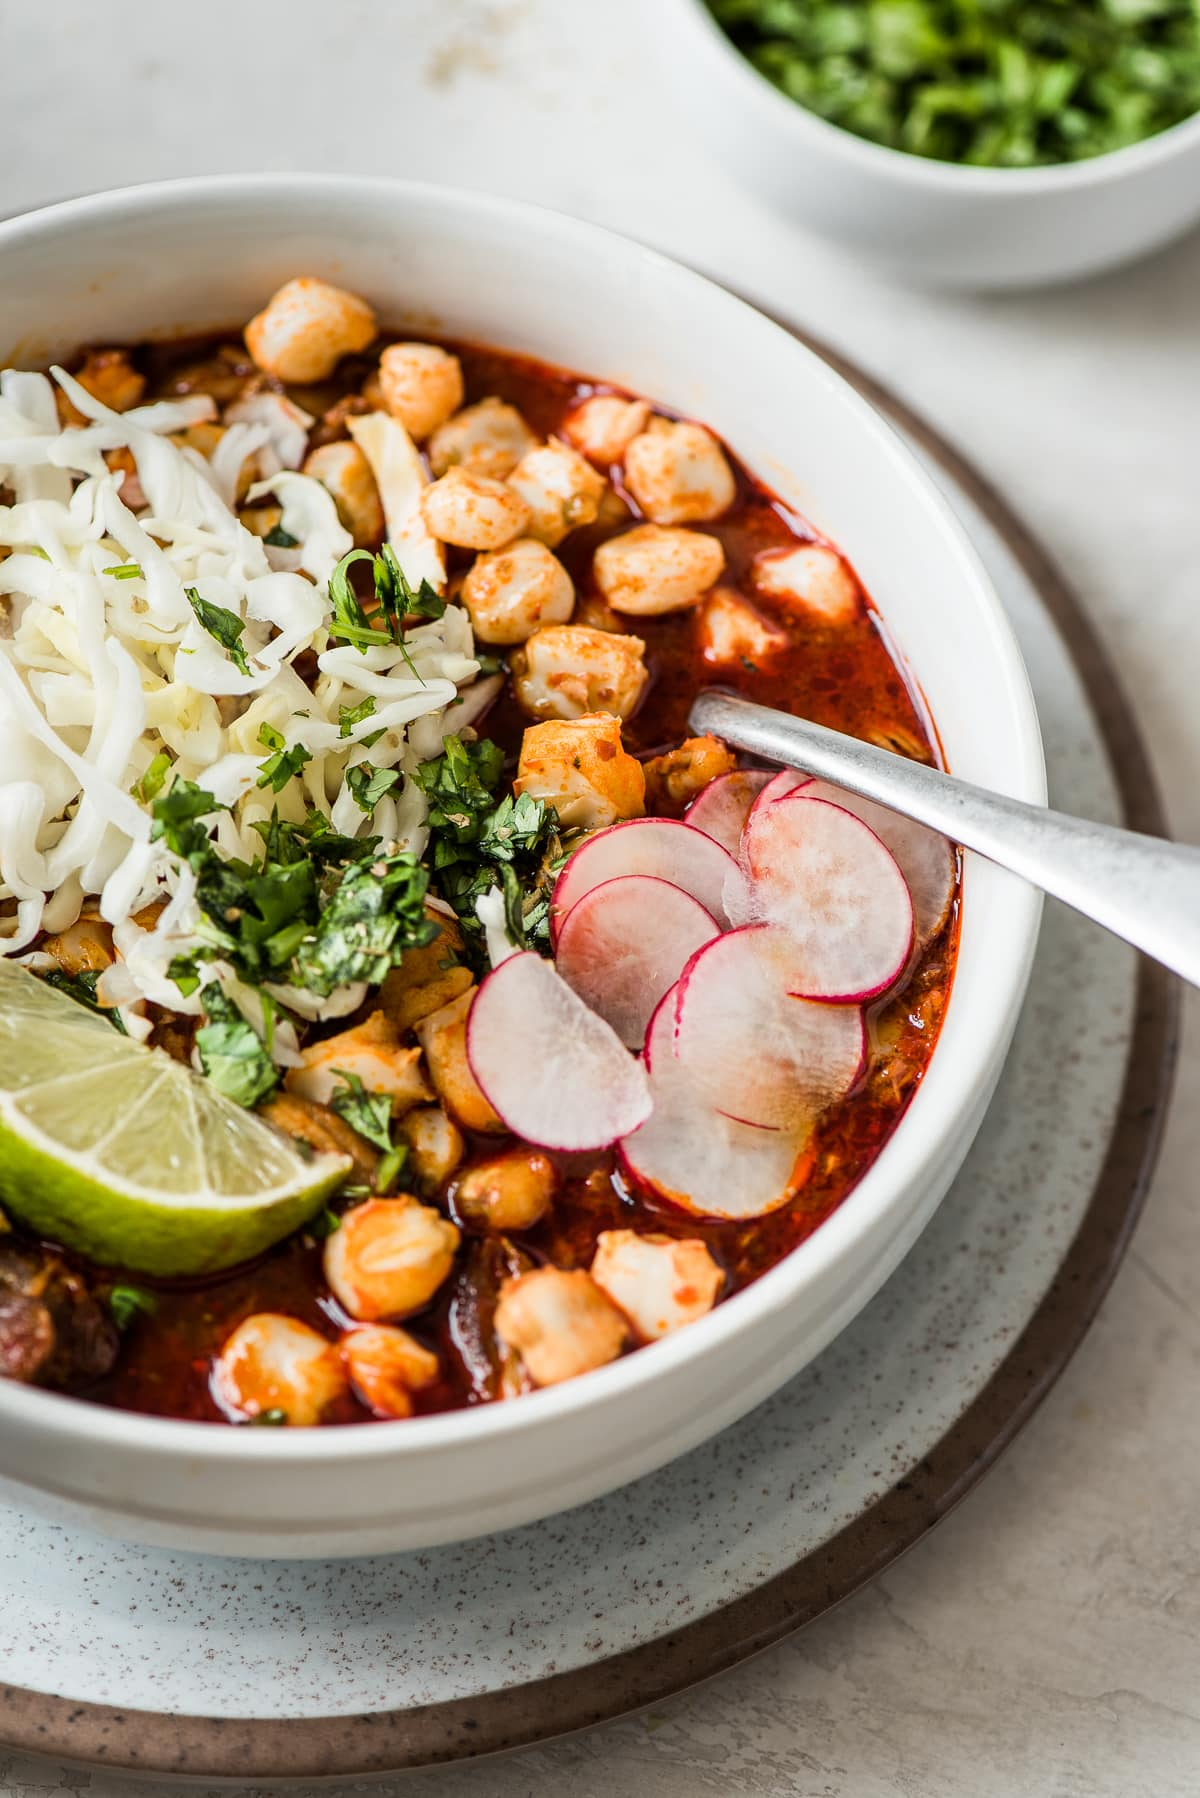 Red posole in a bowl with hominy and toppings.